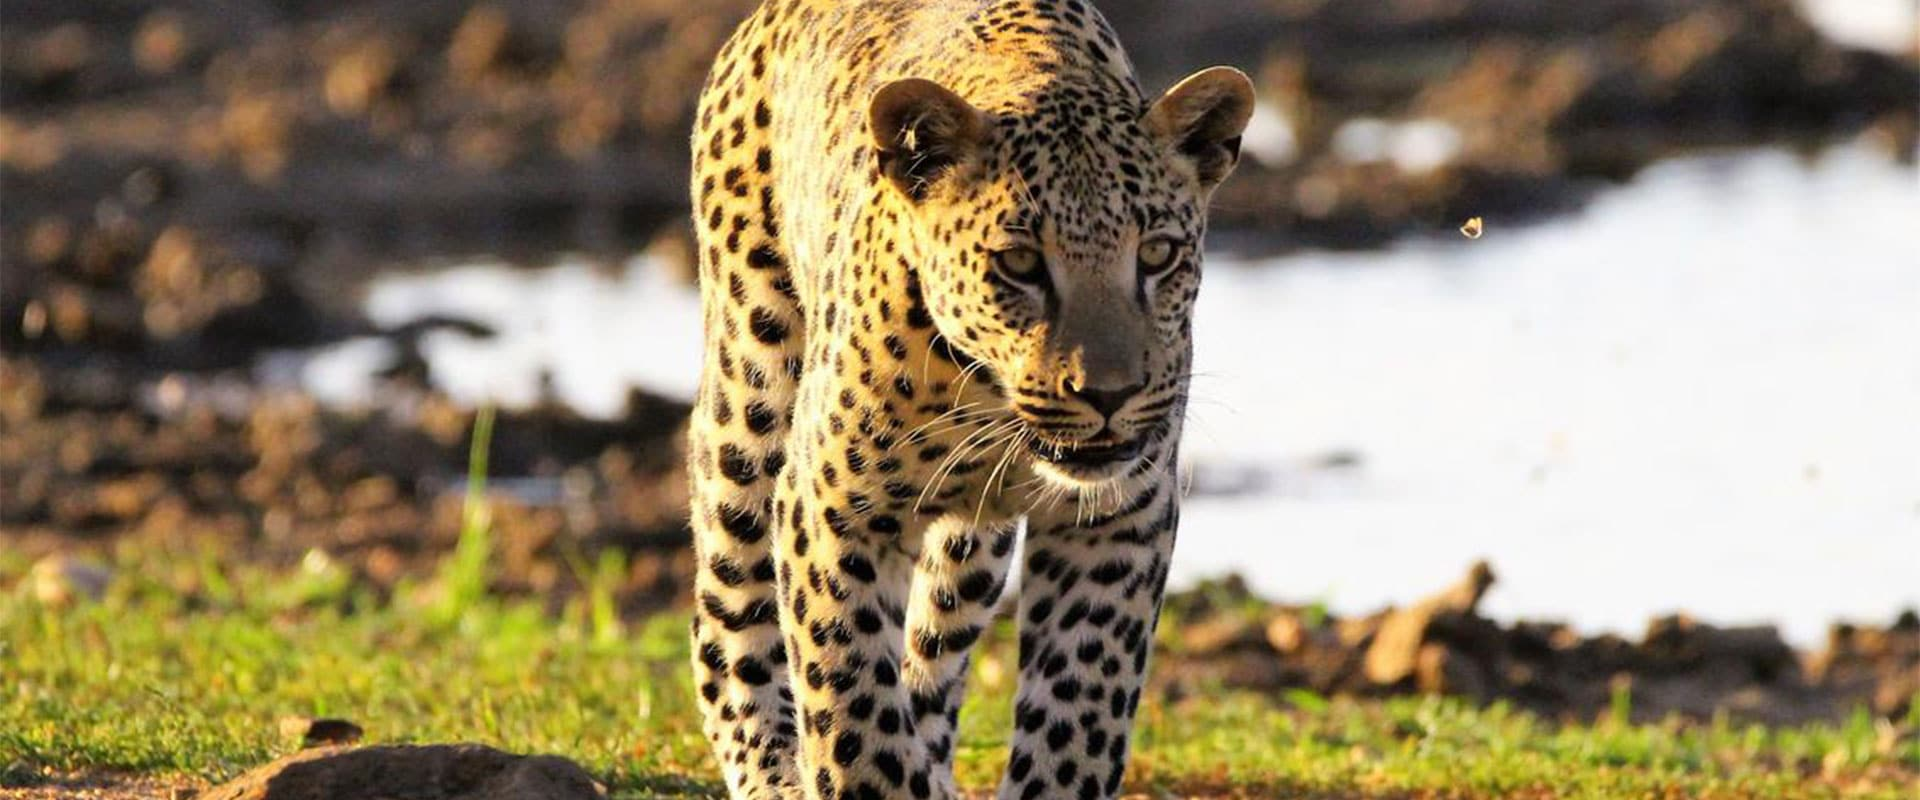 Track leopard